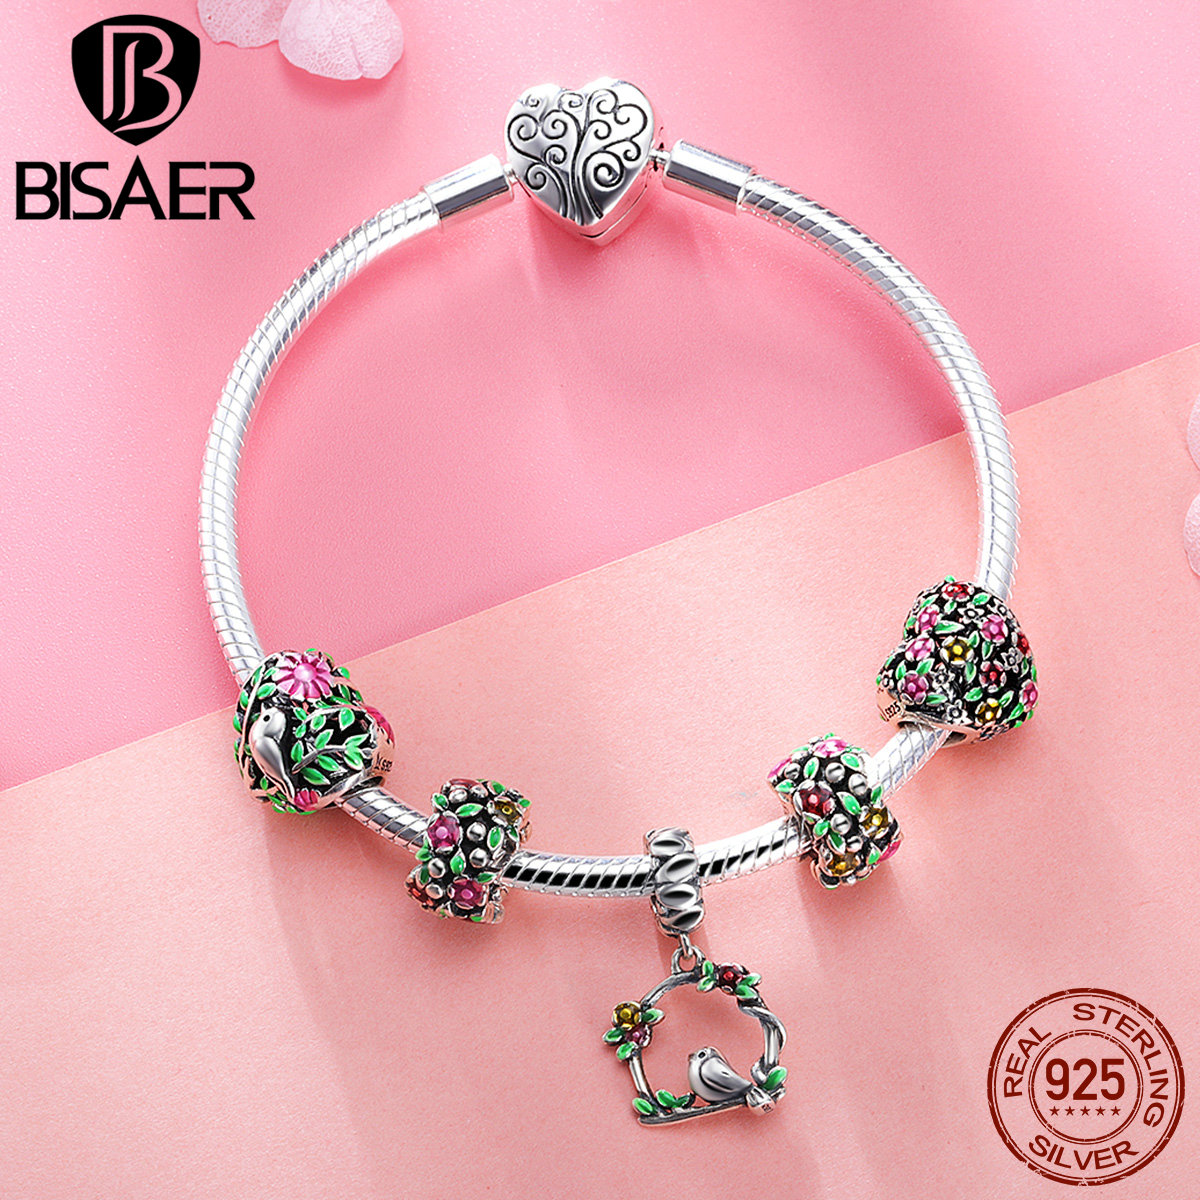 BISAER 2019 New 925 Sterling Silver Bird In Bush Heart Green Summer Collection Charm Bracelet Female Brand Beads Bangle GXB804